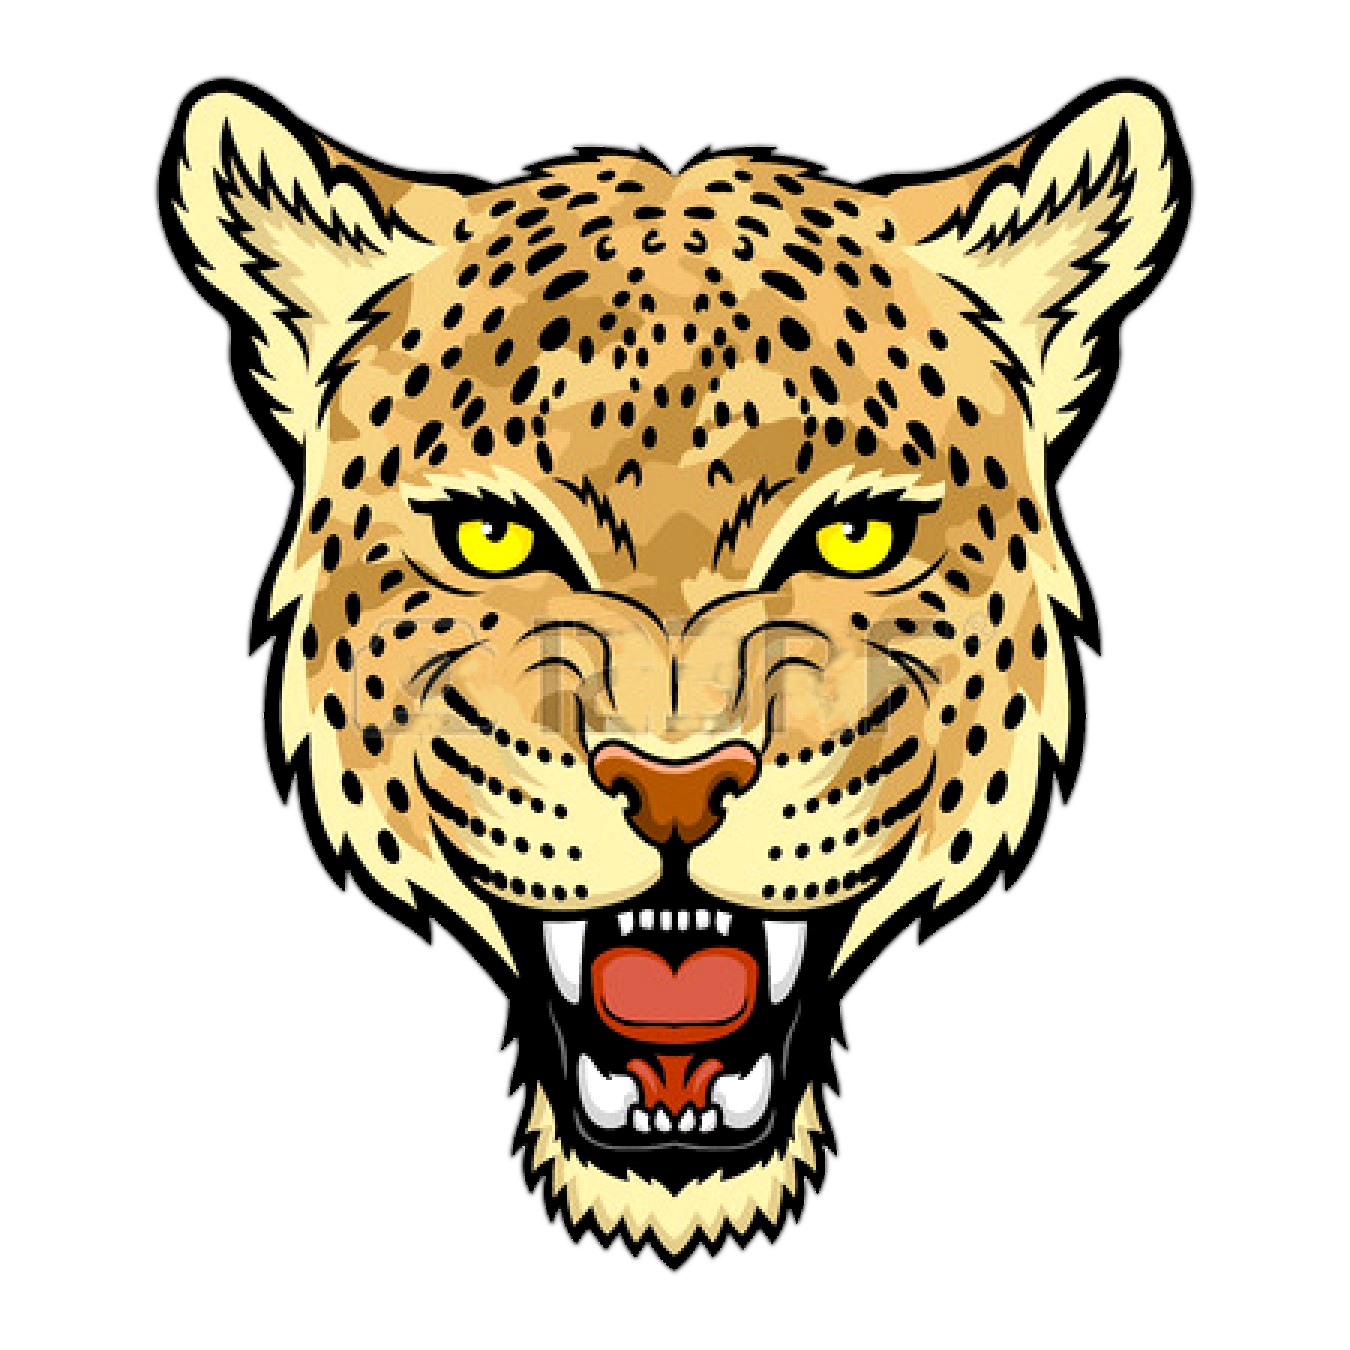 snow leopard clipart at getdrawings com free for personal use snow rh getdrawings com free snow leopard clipart